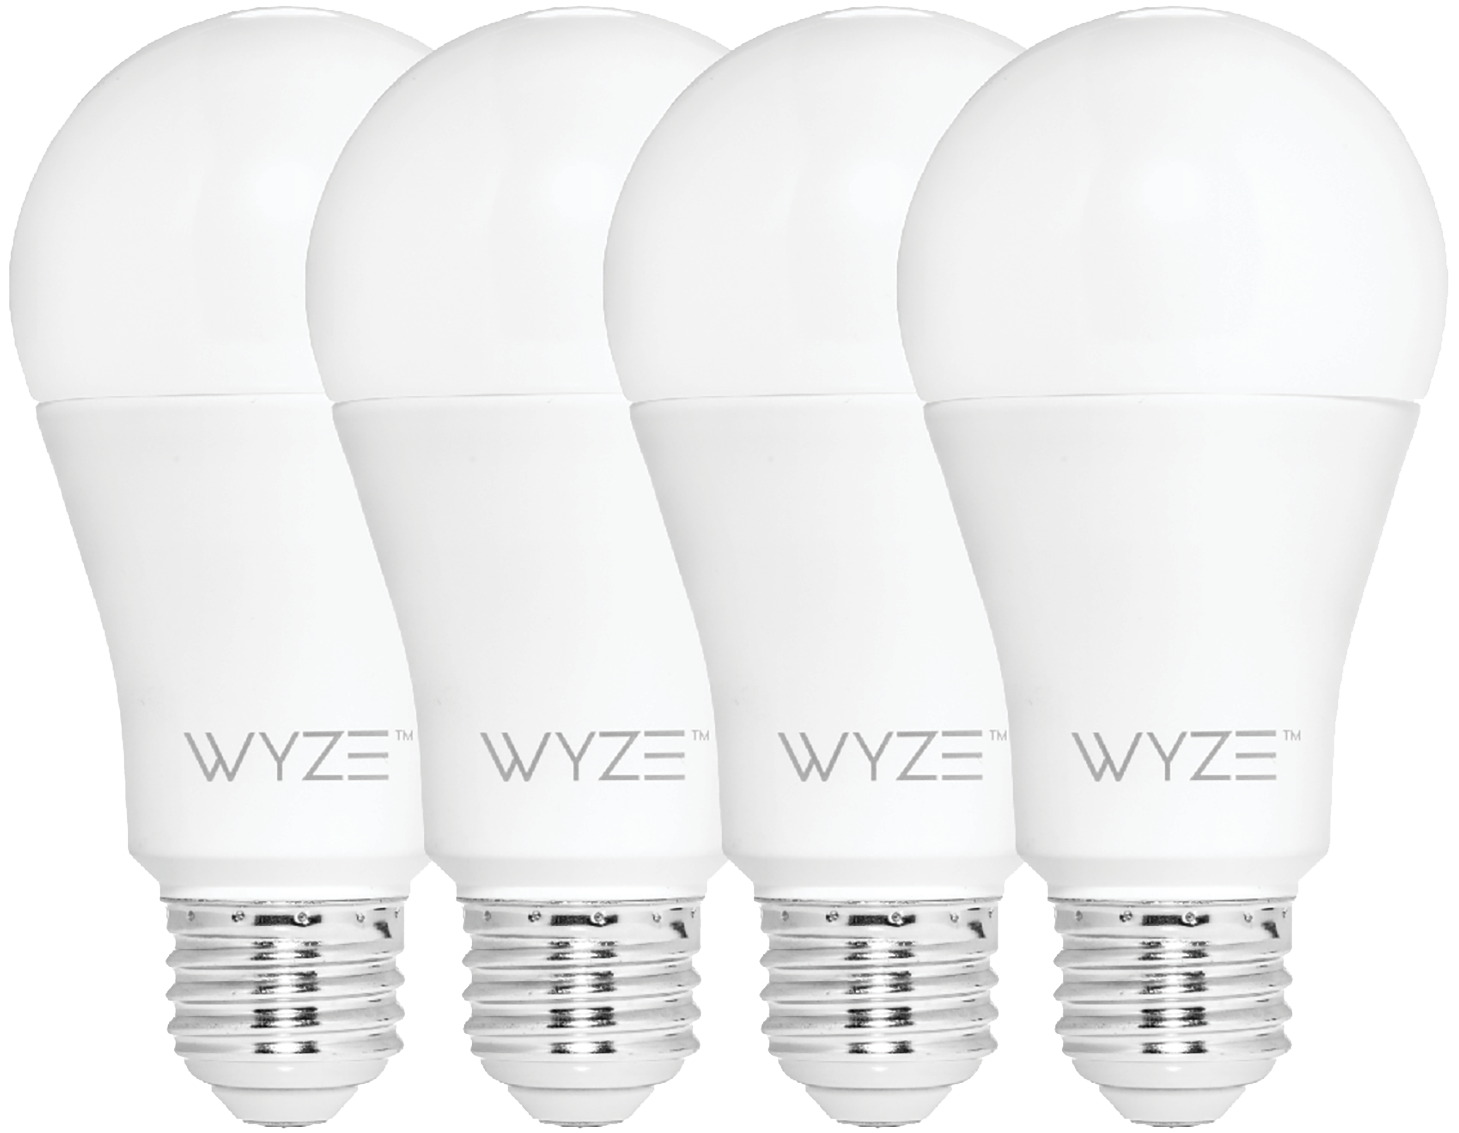 Wyze's next smart home product is an $8 smart light bulb